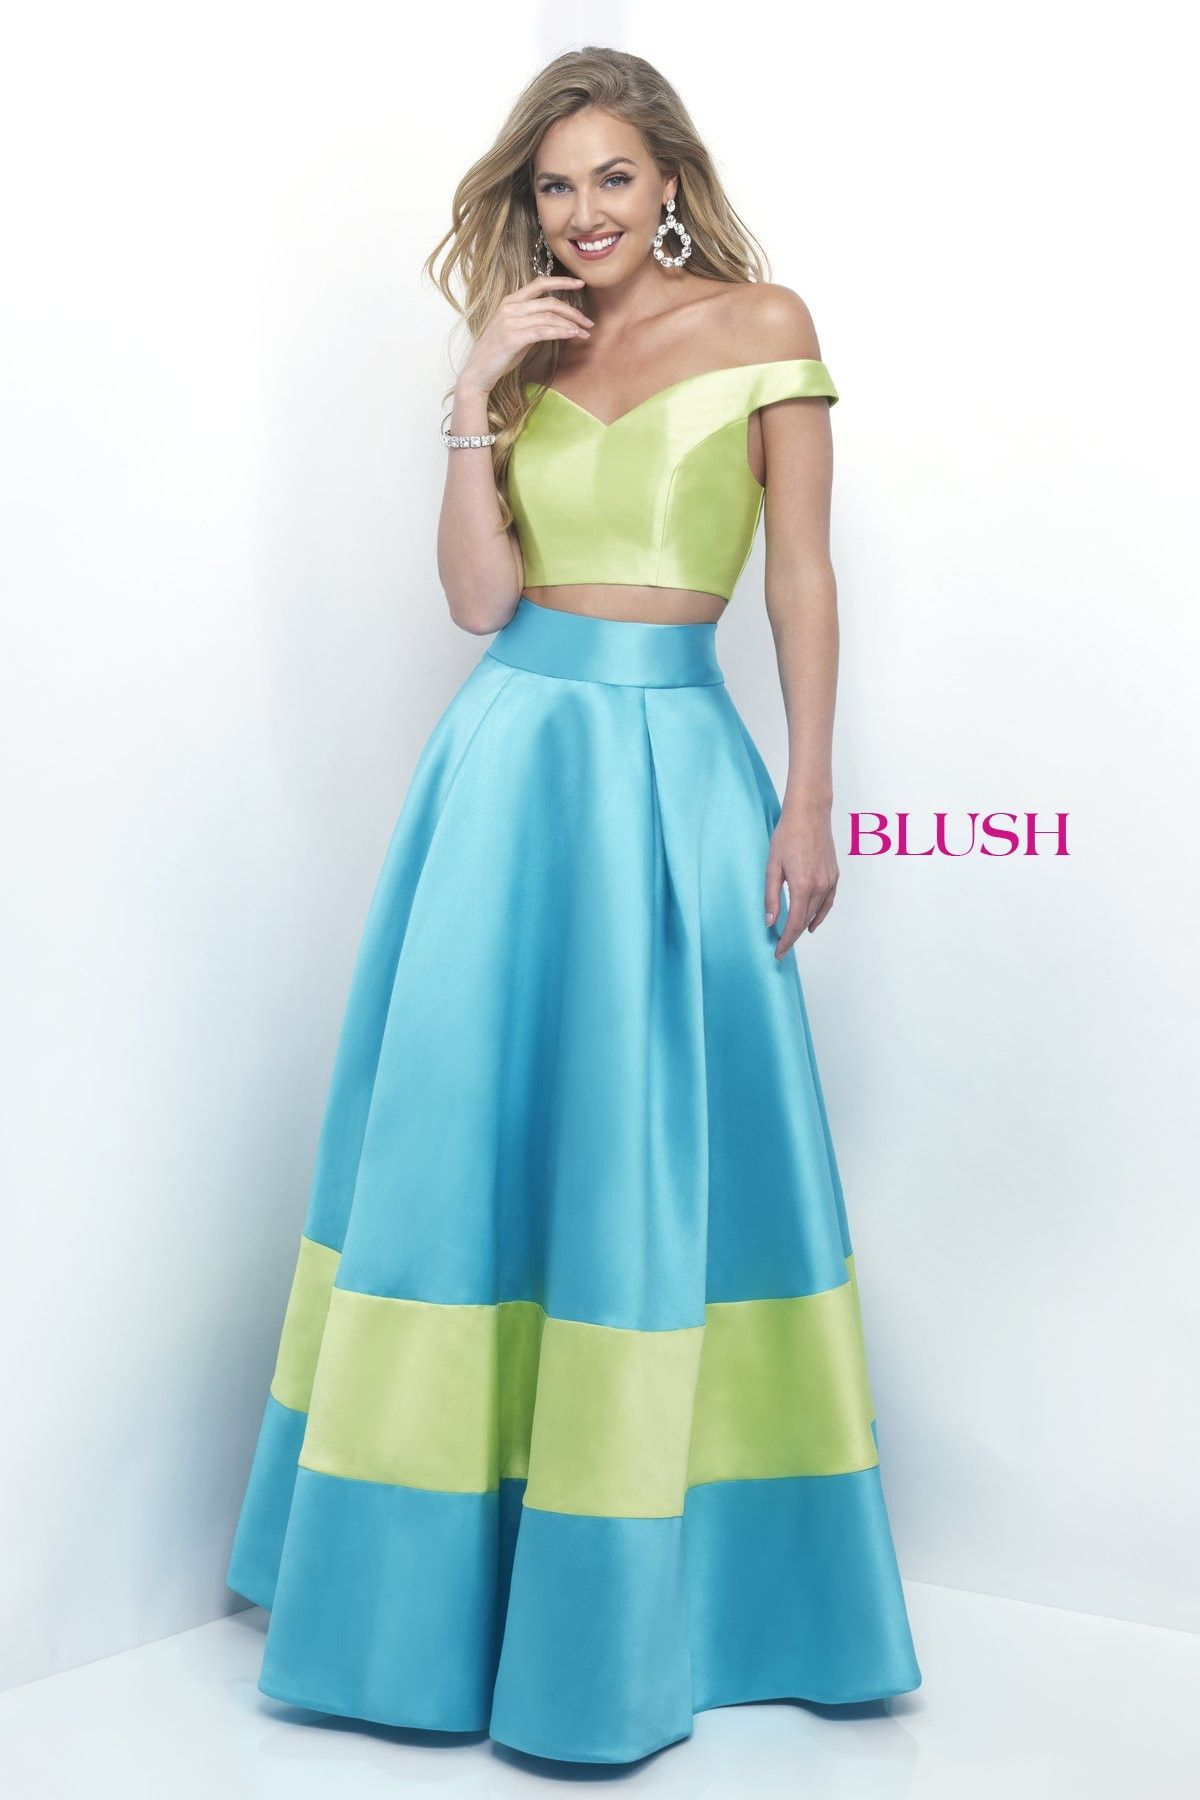 Pink by blush limeturquoise twopiece prom dress prom